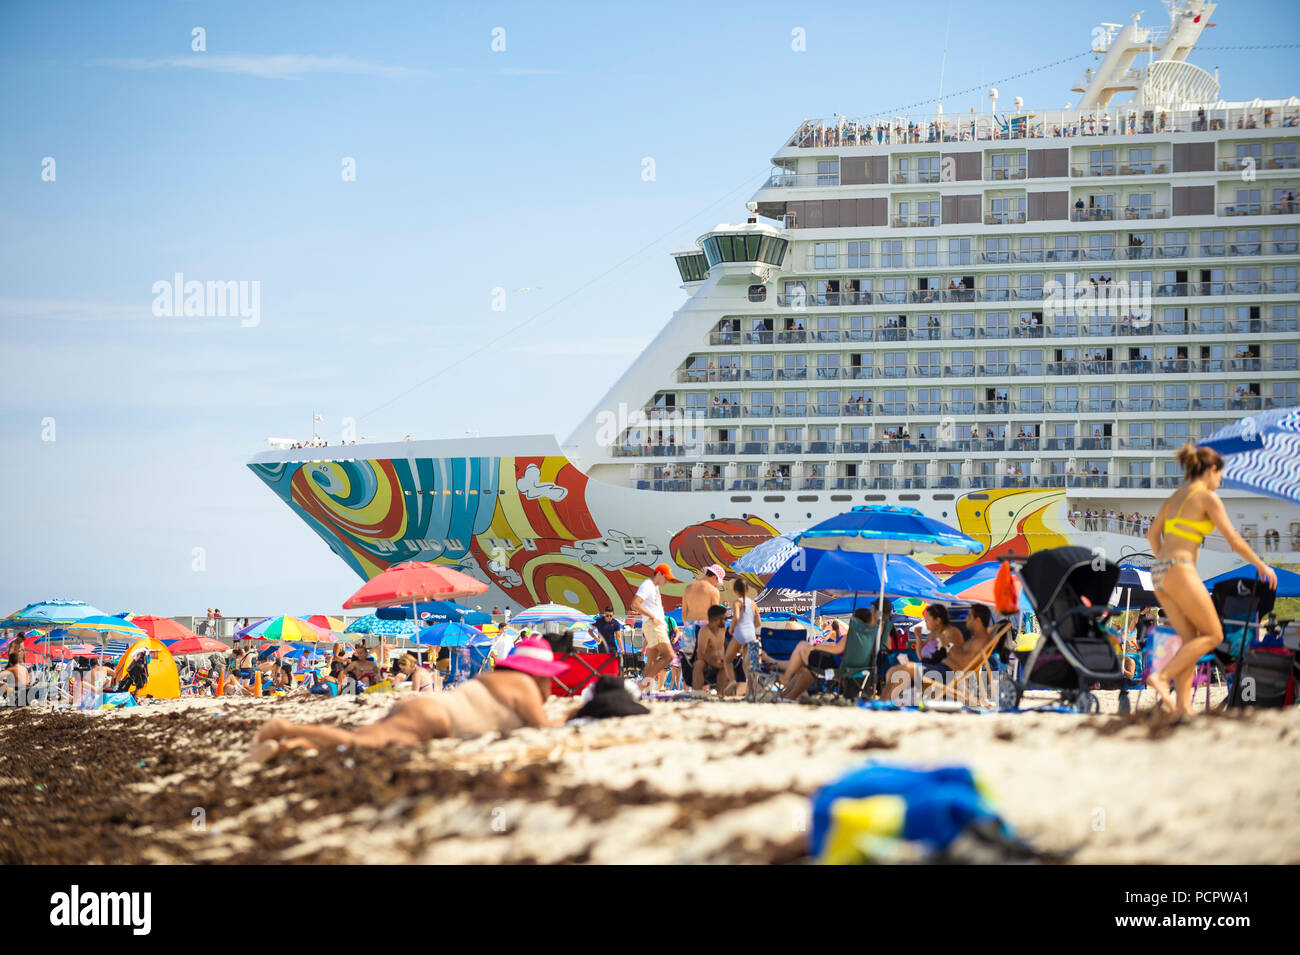 MIAMI - CIRCA JUNE, 2018: Norwegian Getaway cruise ship leaves port and passes South Beach busy with sunbathers. - Stock Image